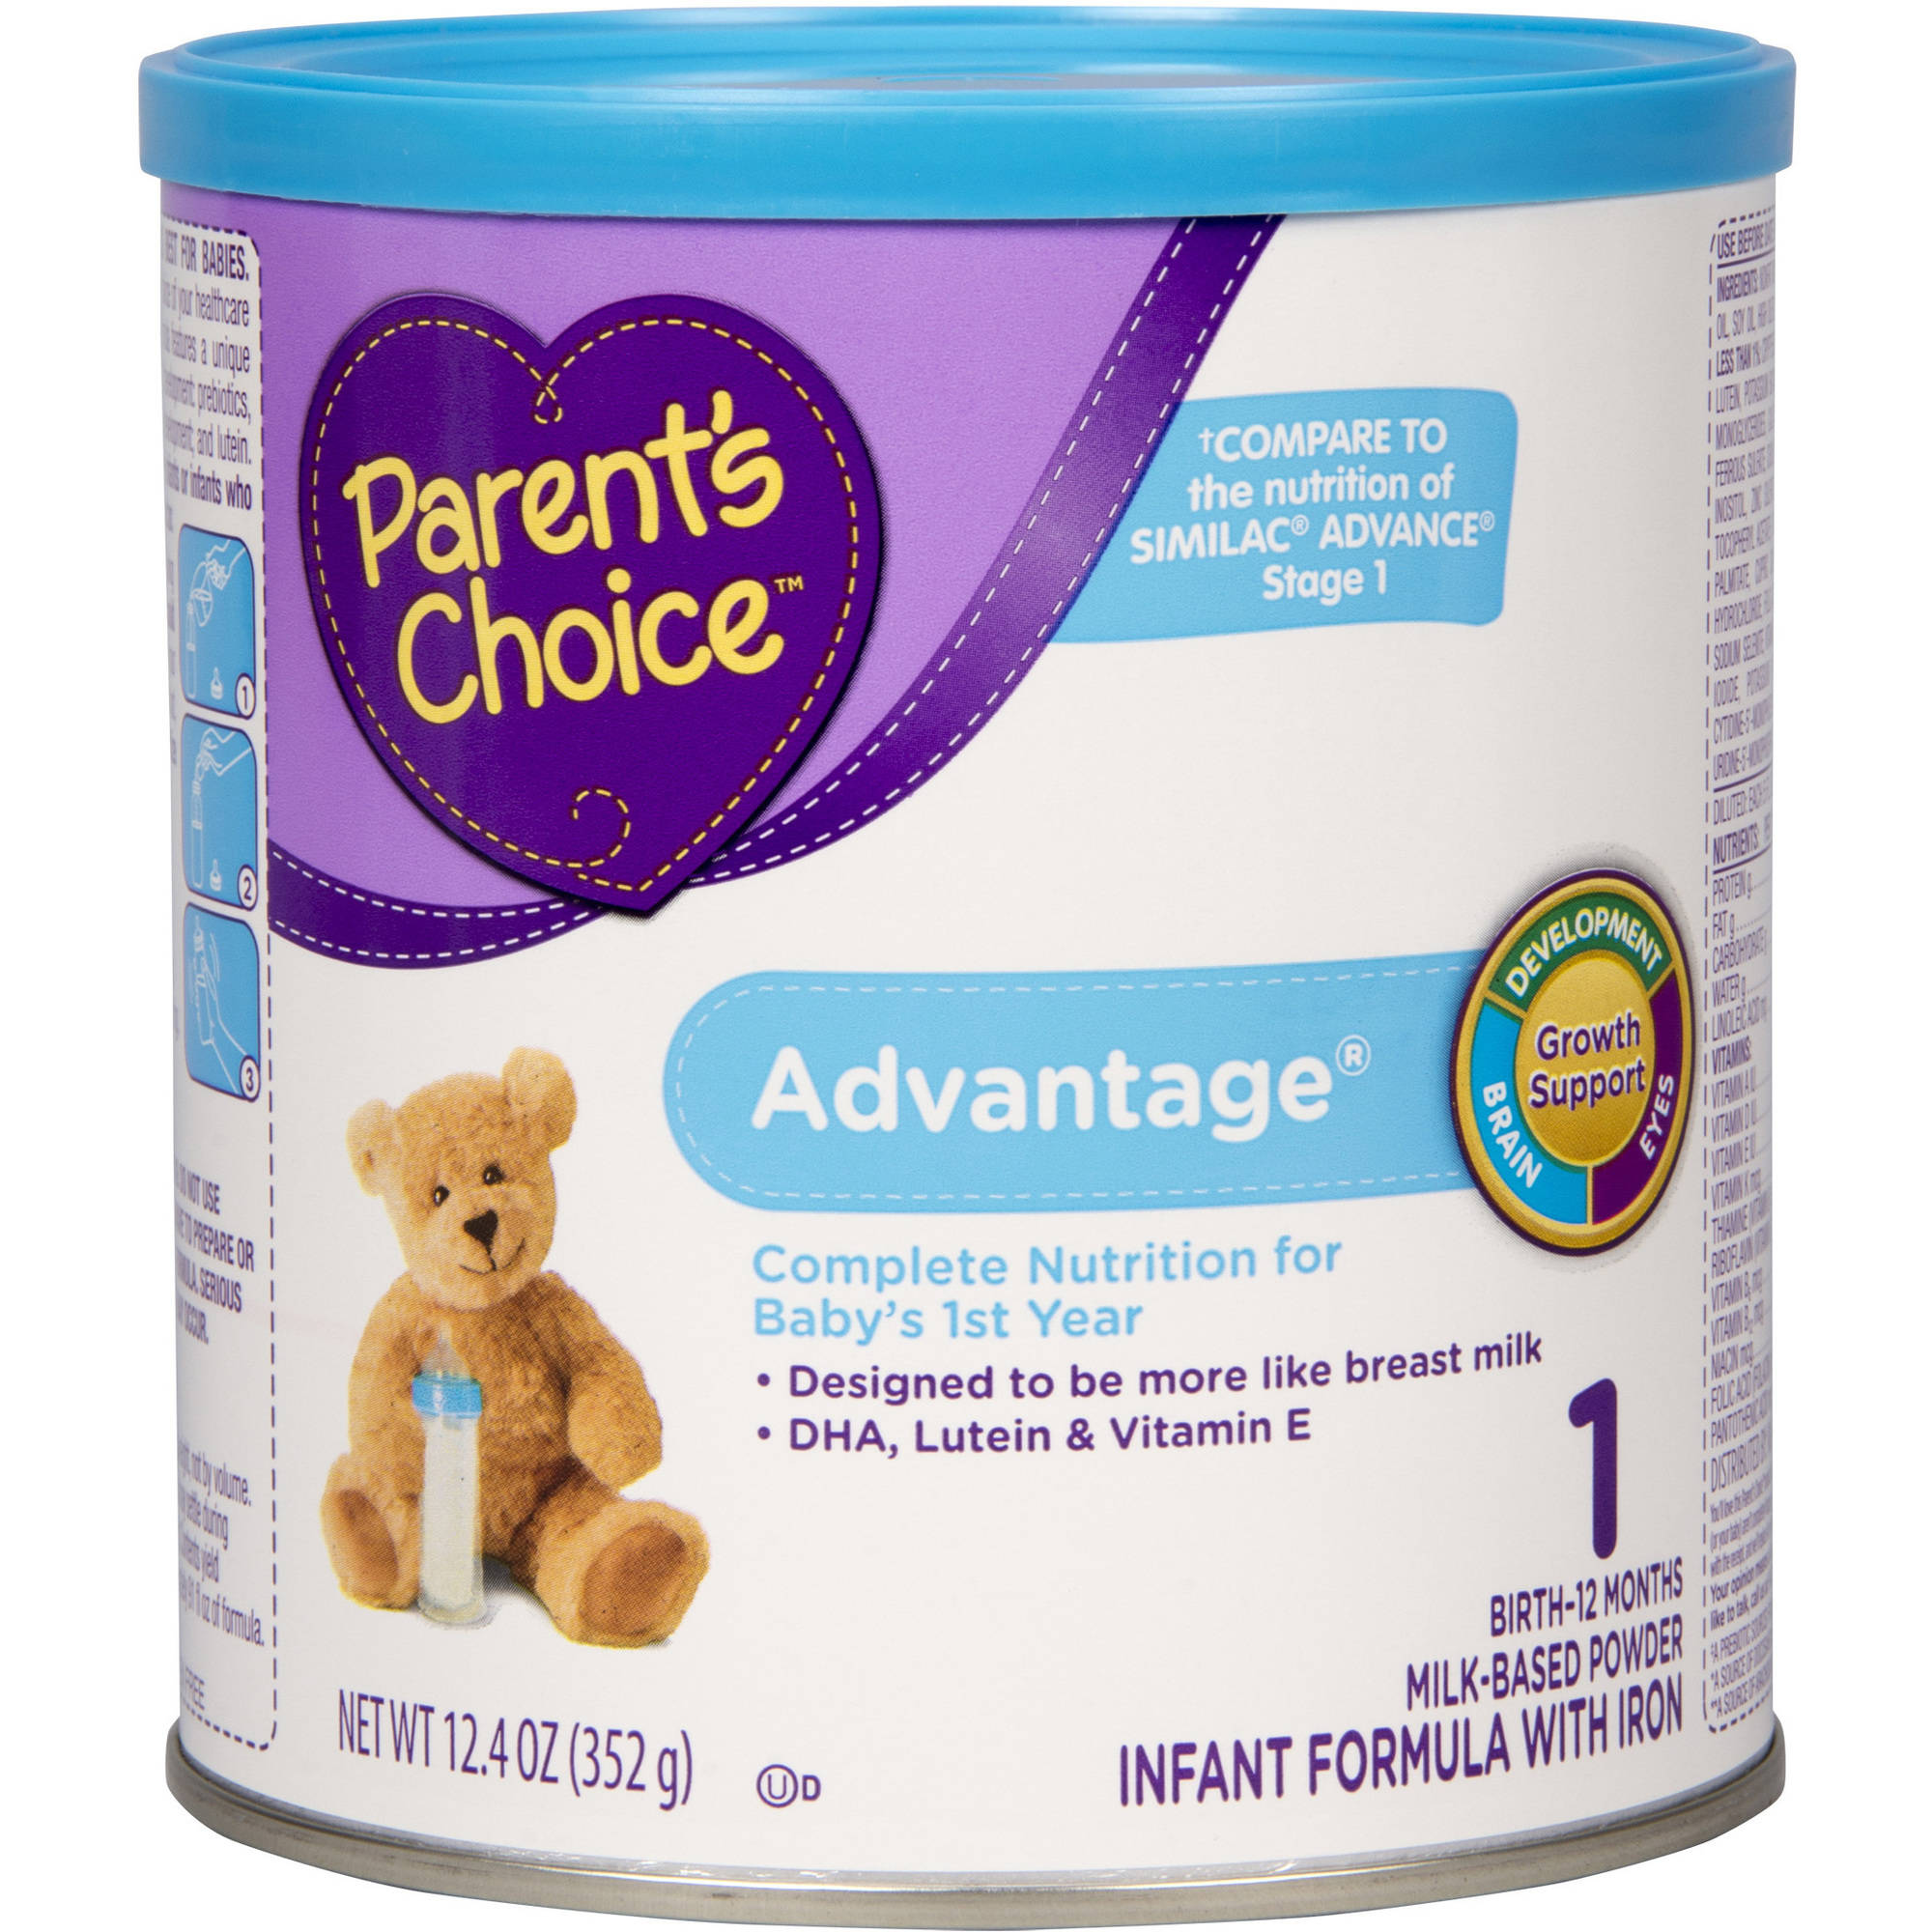 Parent's Choice Advantage Powder Infant Formula with Iron, 12.4oz